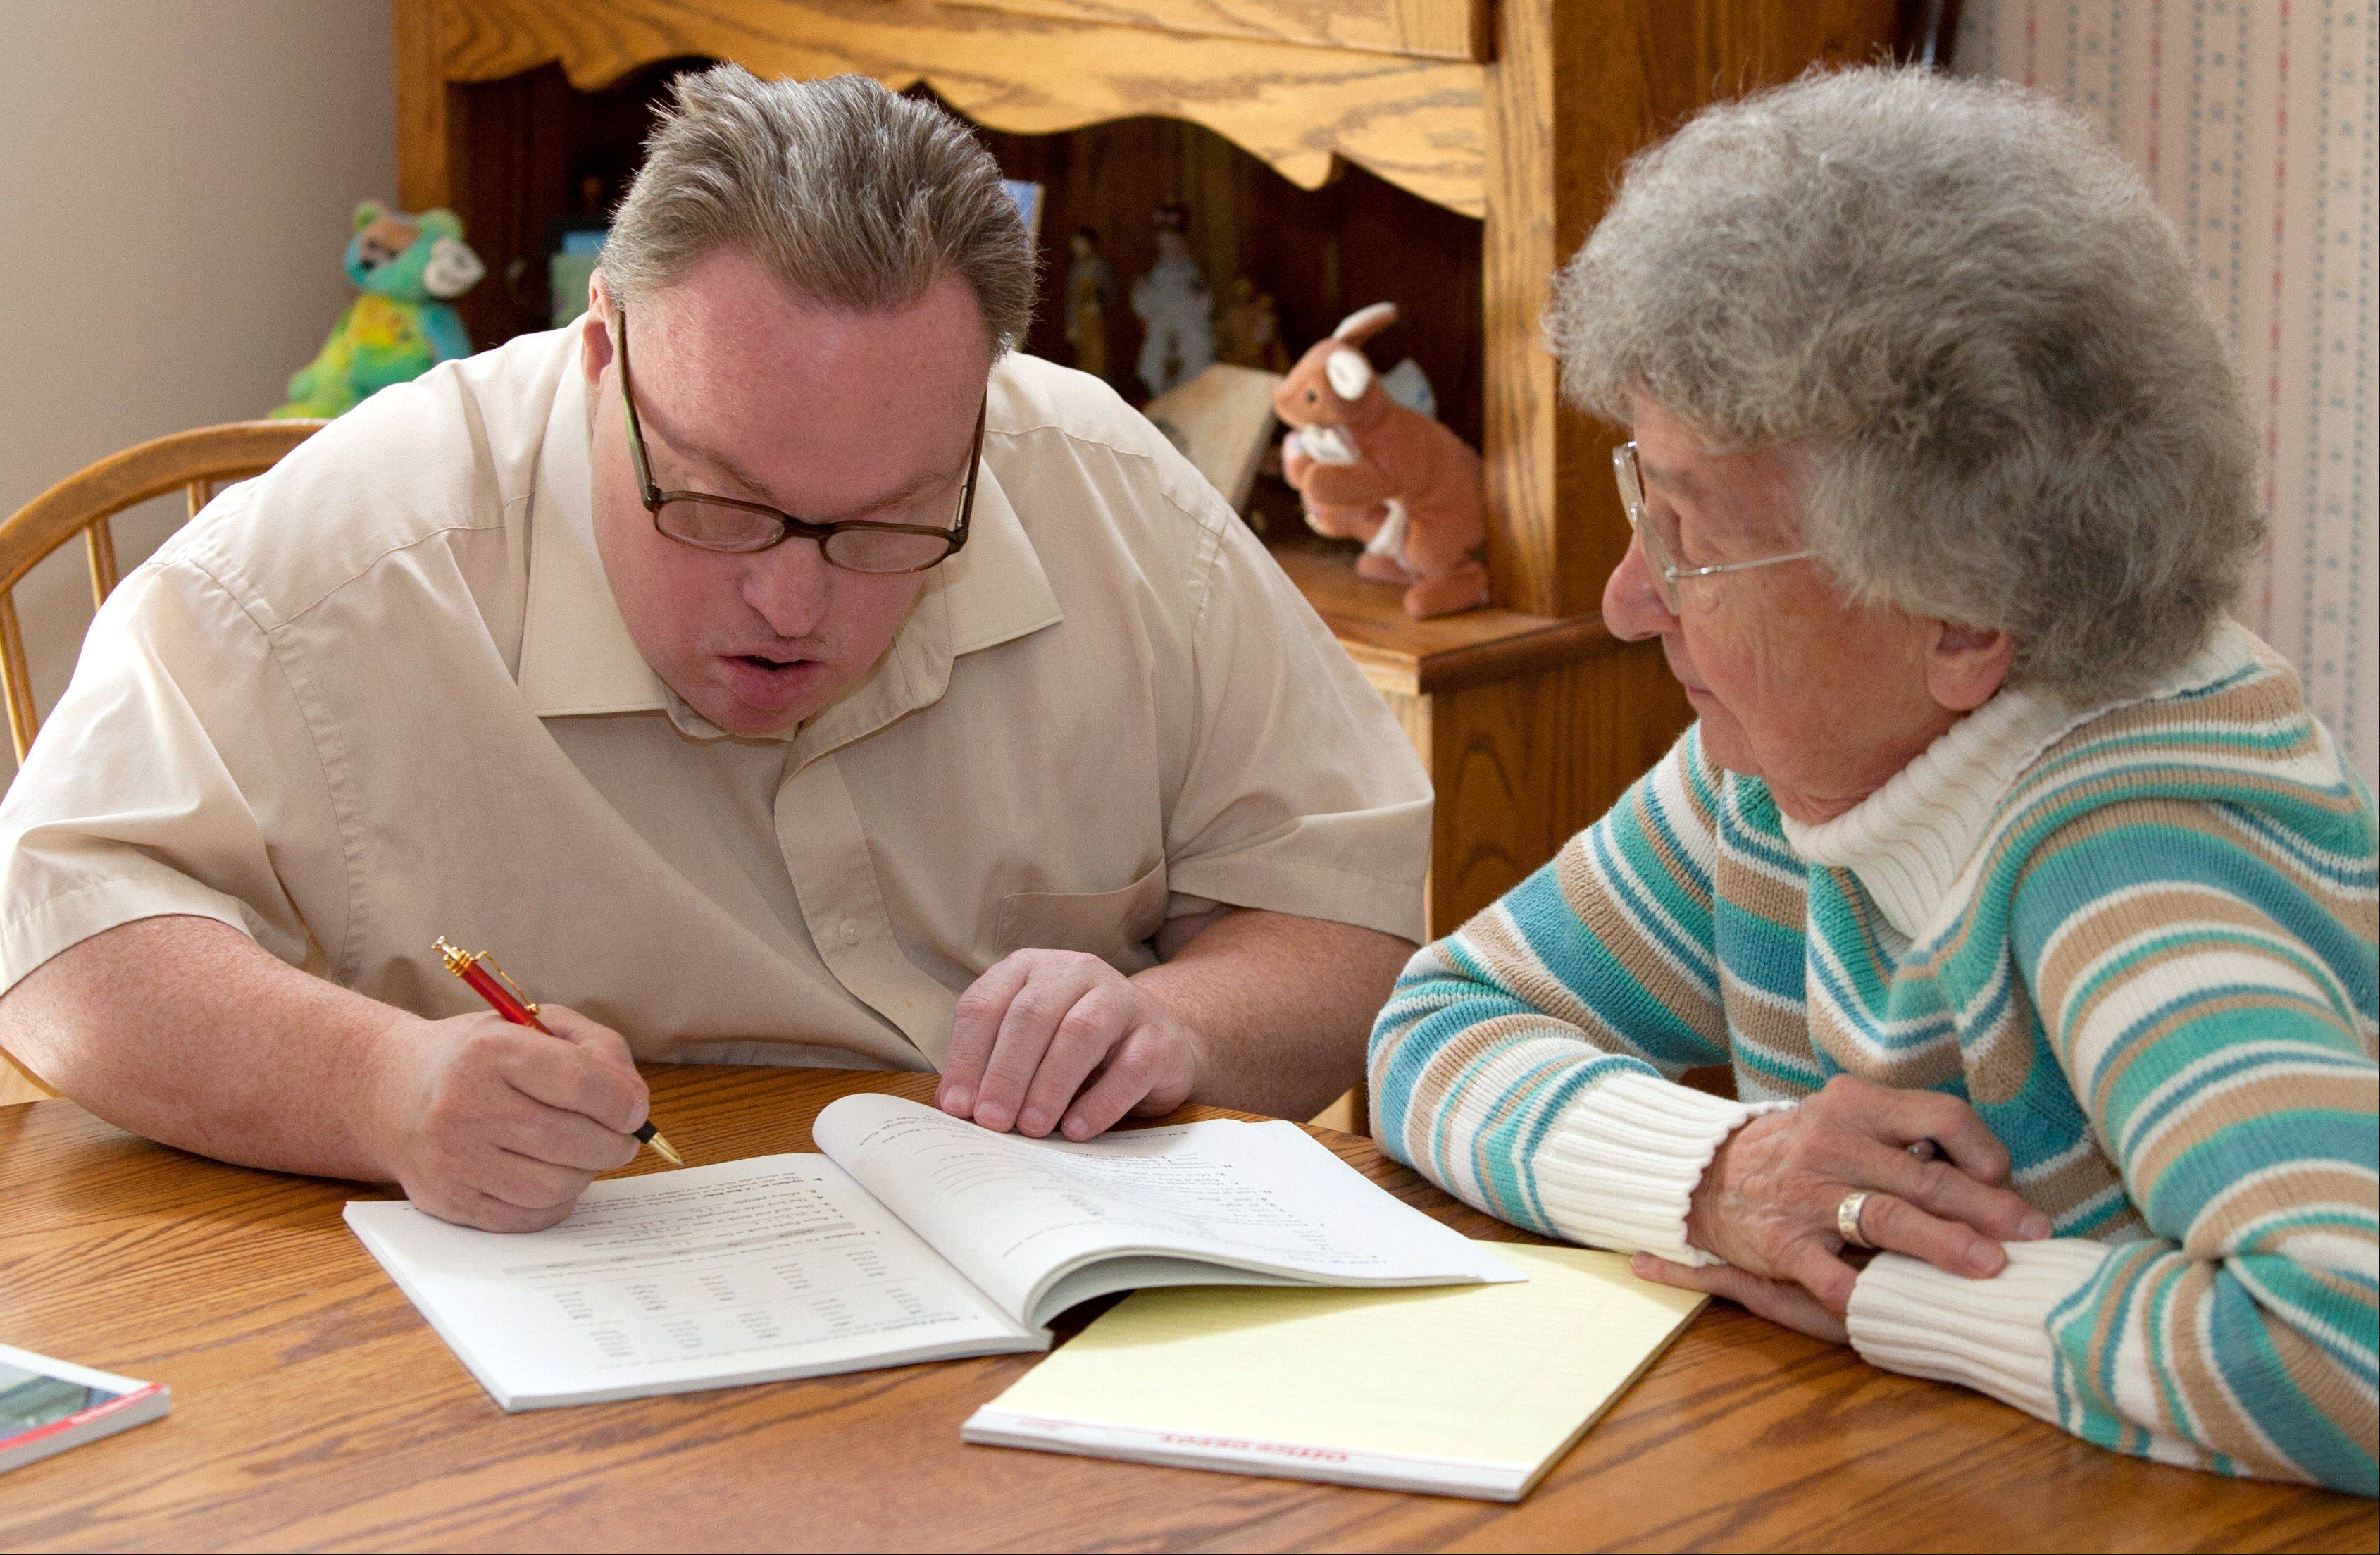 Marjorie Sullivan Lee helps Kevin with his reading. Kevin has many years of individualized reading credits at College of DuPage. Although Kevin doesn't read books, he has enough skills to read signs, ads, TV schedules and other materials that are part of daily life.